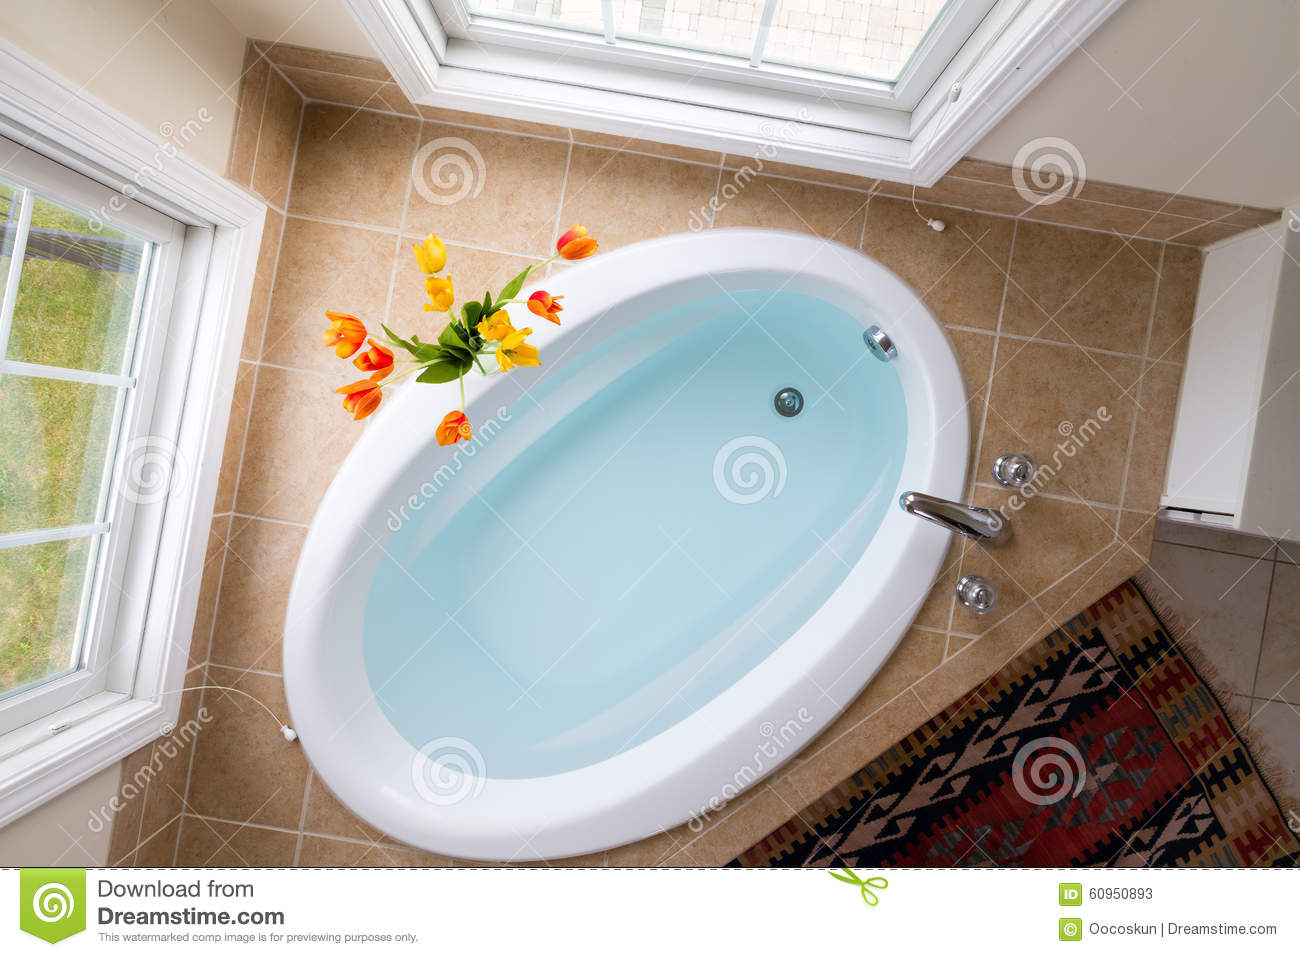 Corner Oval Bathtub Full Of Clean Water Stock Image - Image of ...